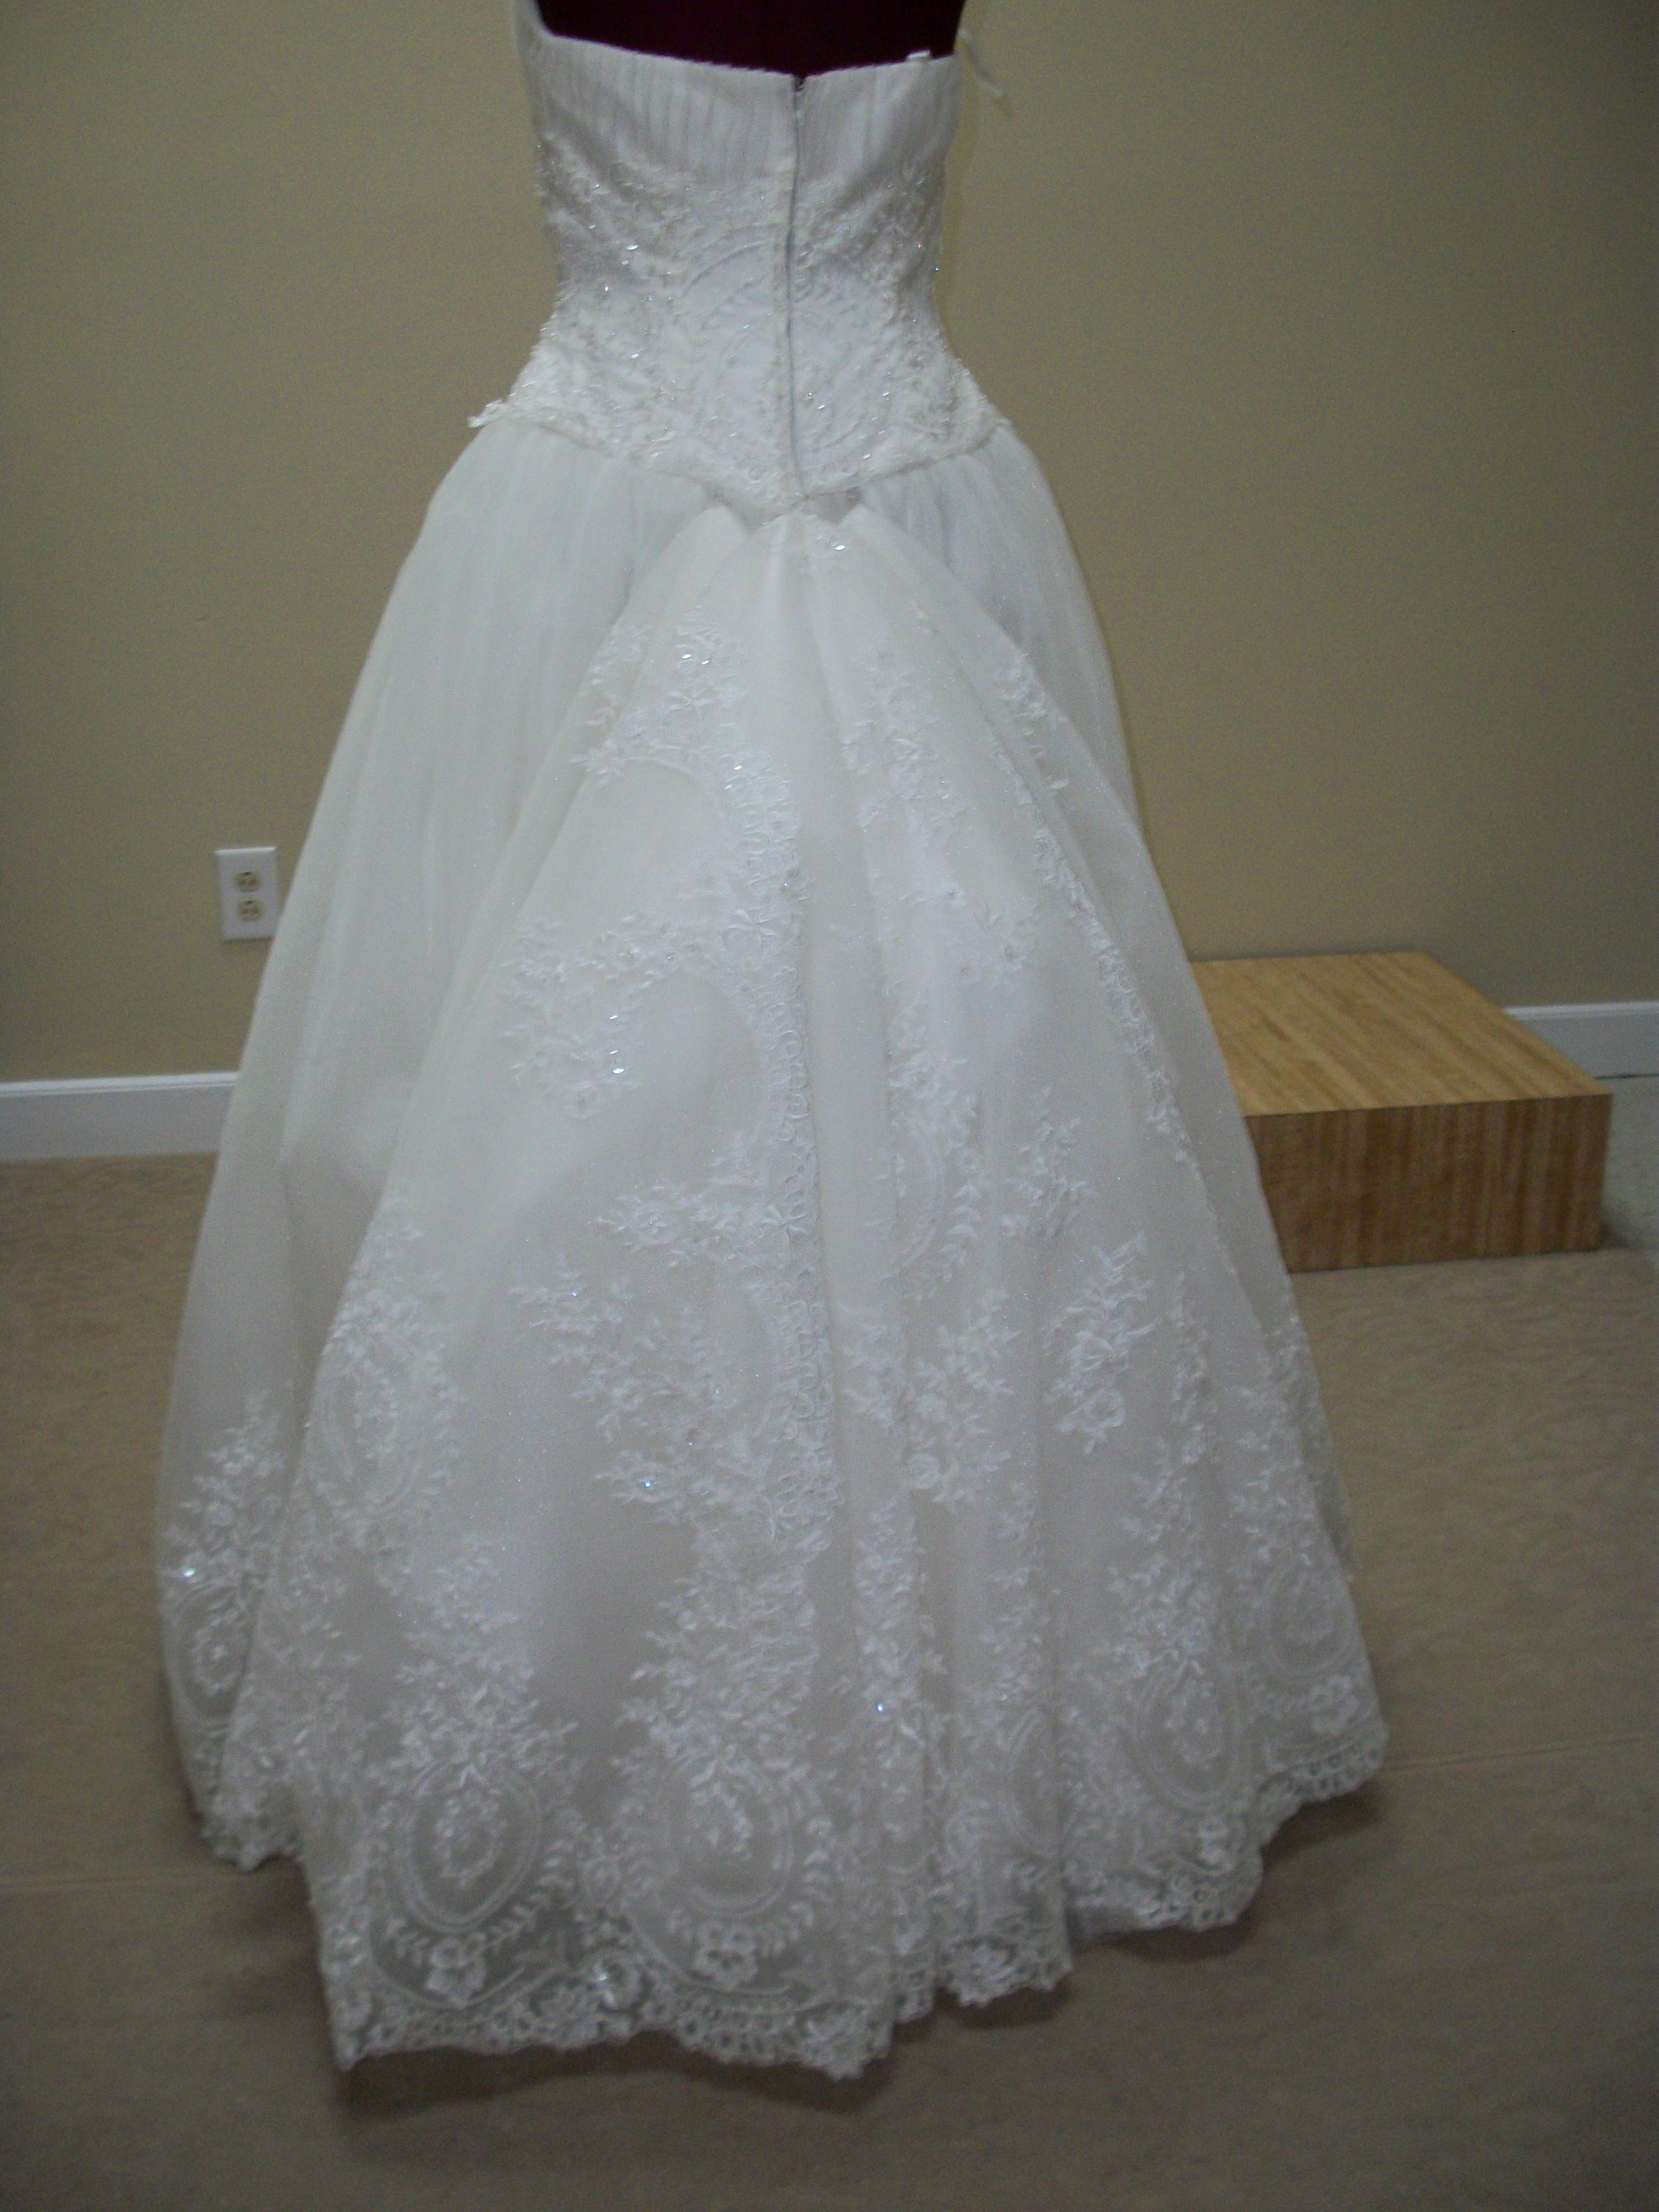 Alterations By Christy  We specialize in fine delicate alterations for your bridal needs and more